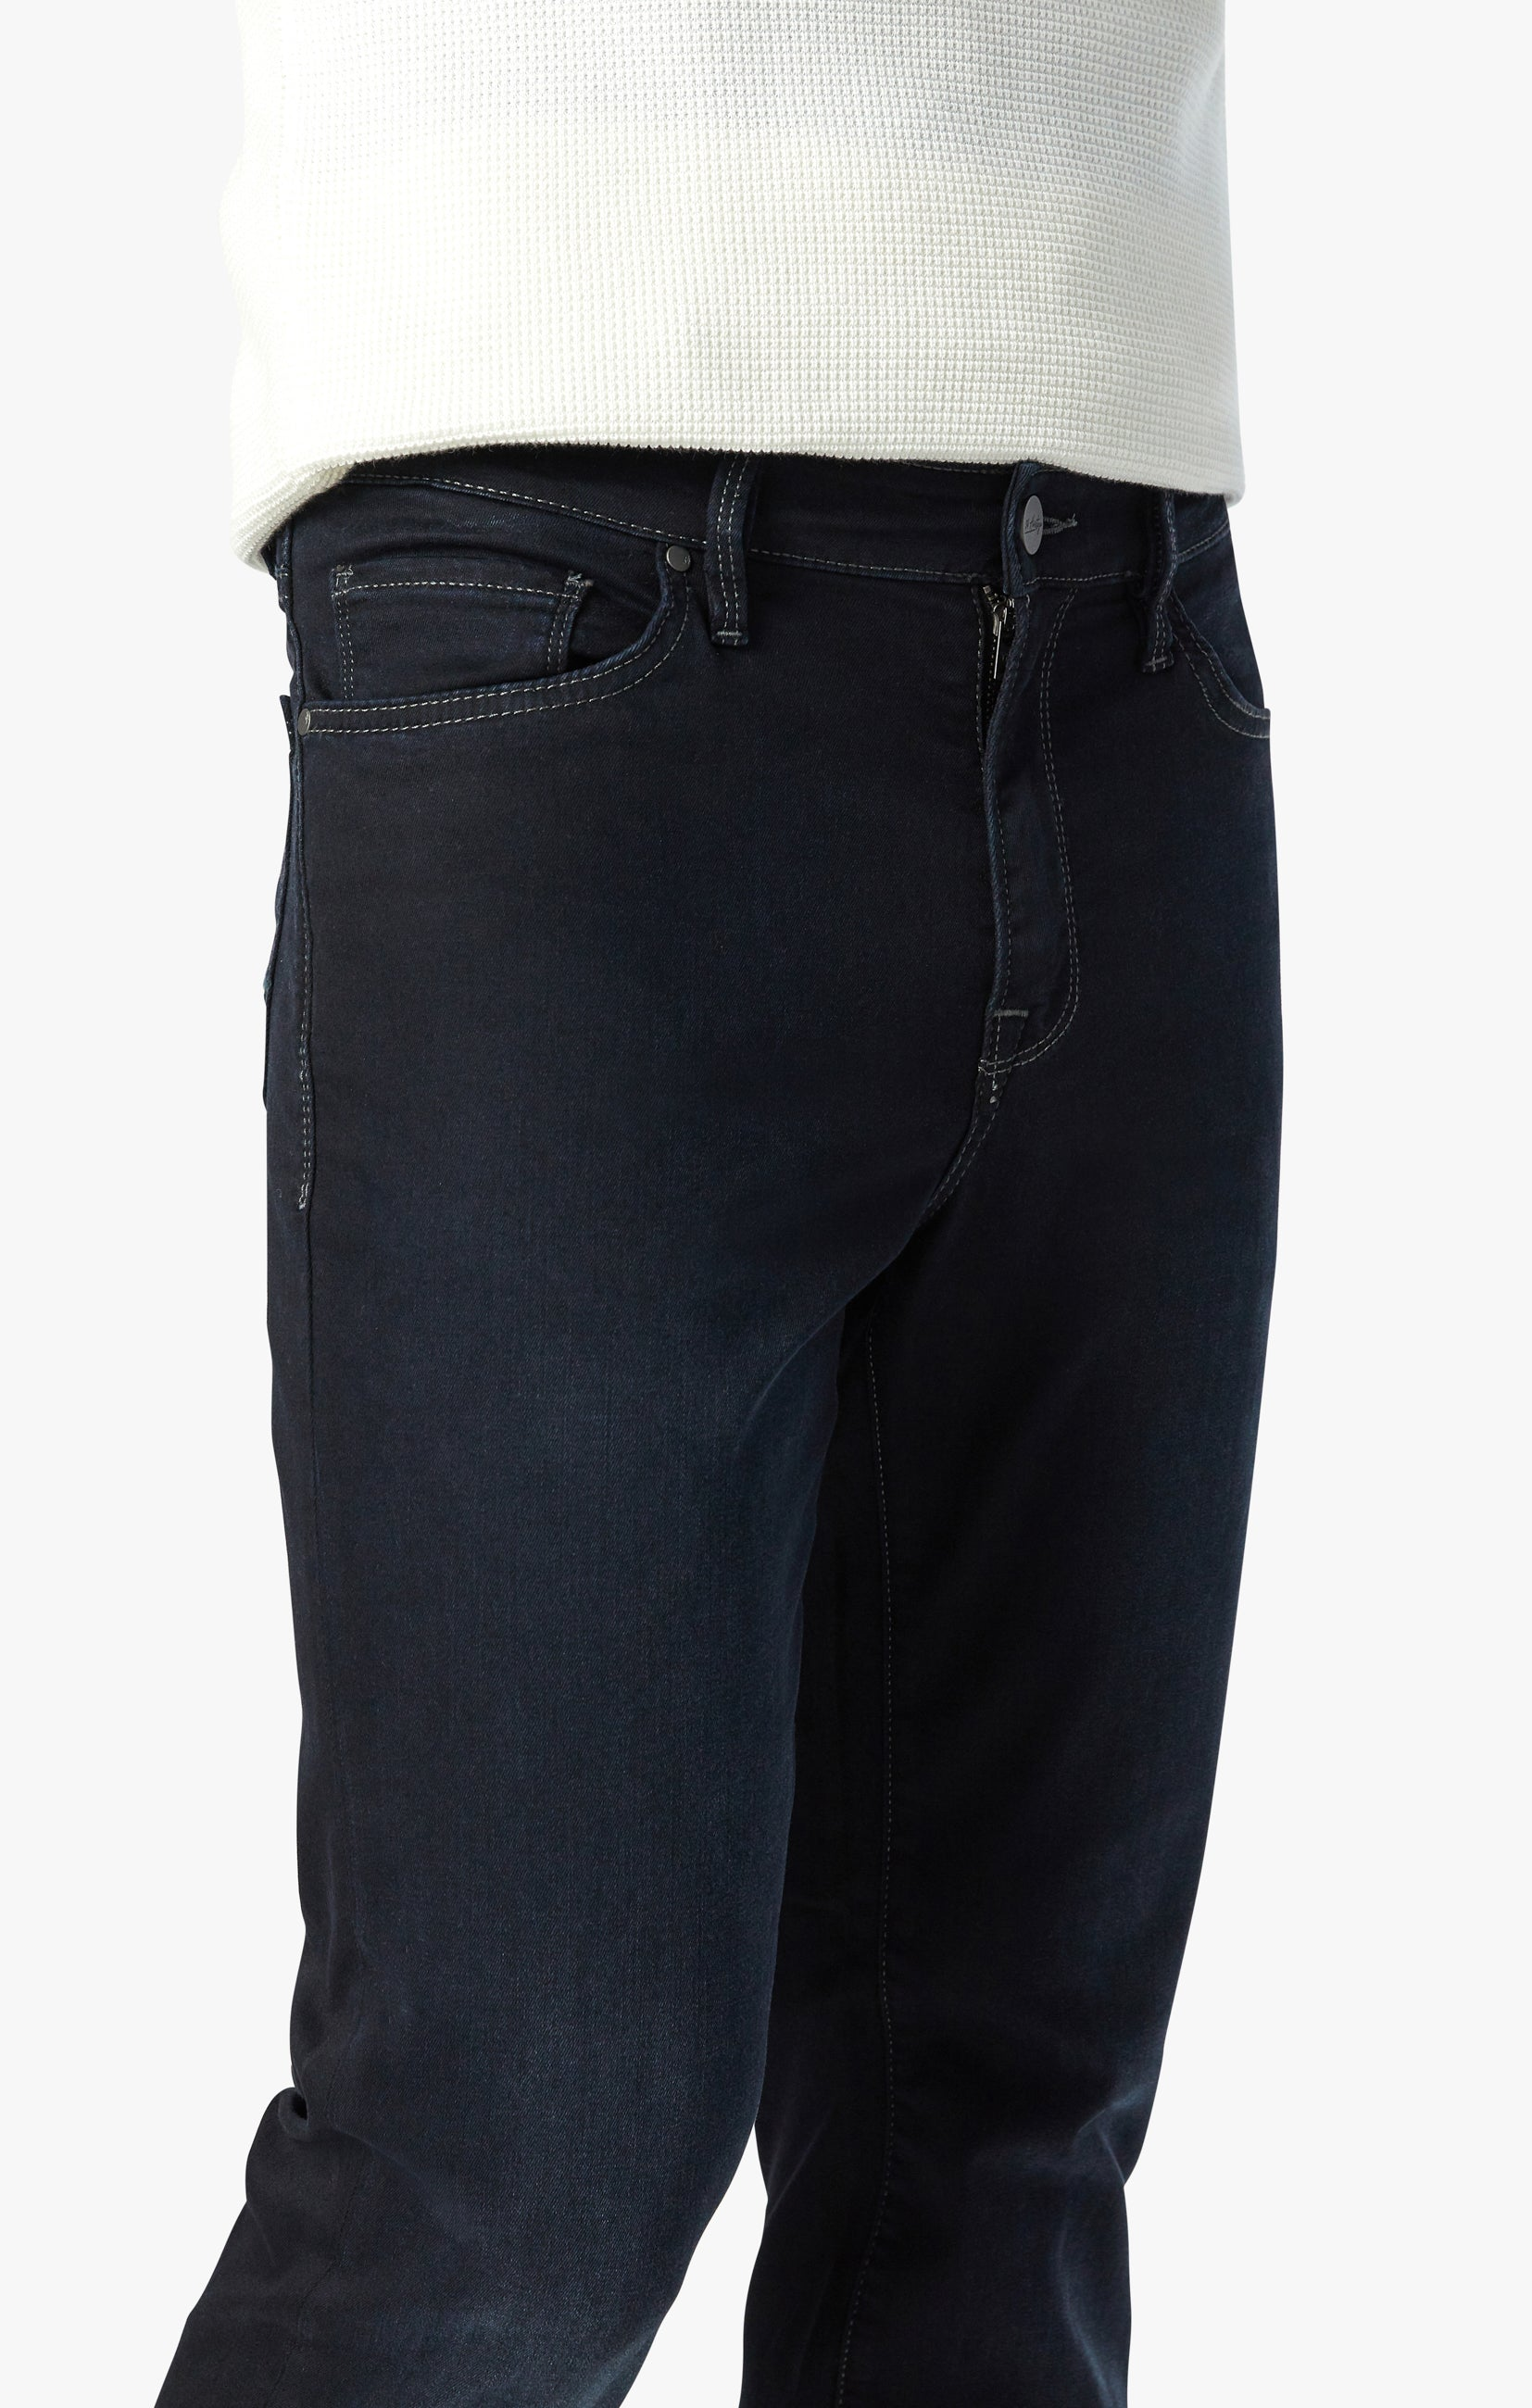 Champ Athletic Fit Jeans In Midnight Austin Image 7